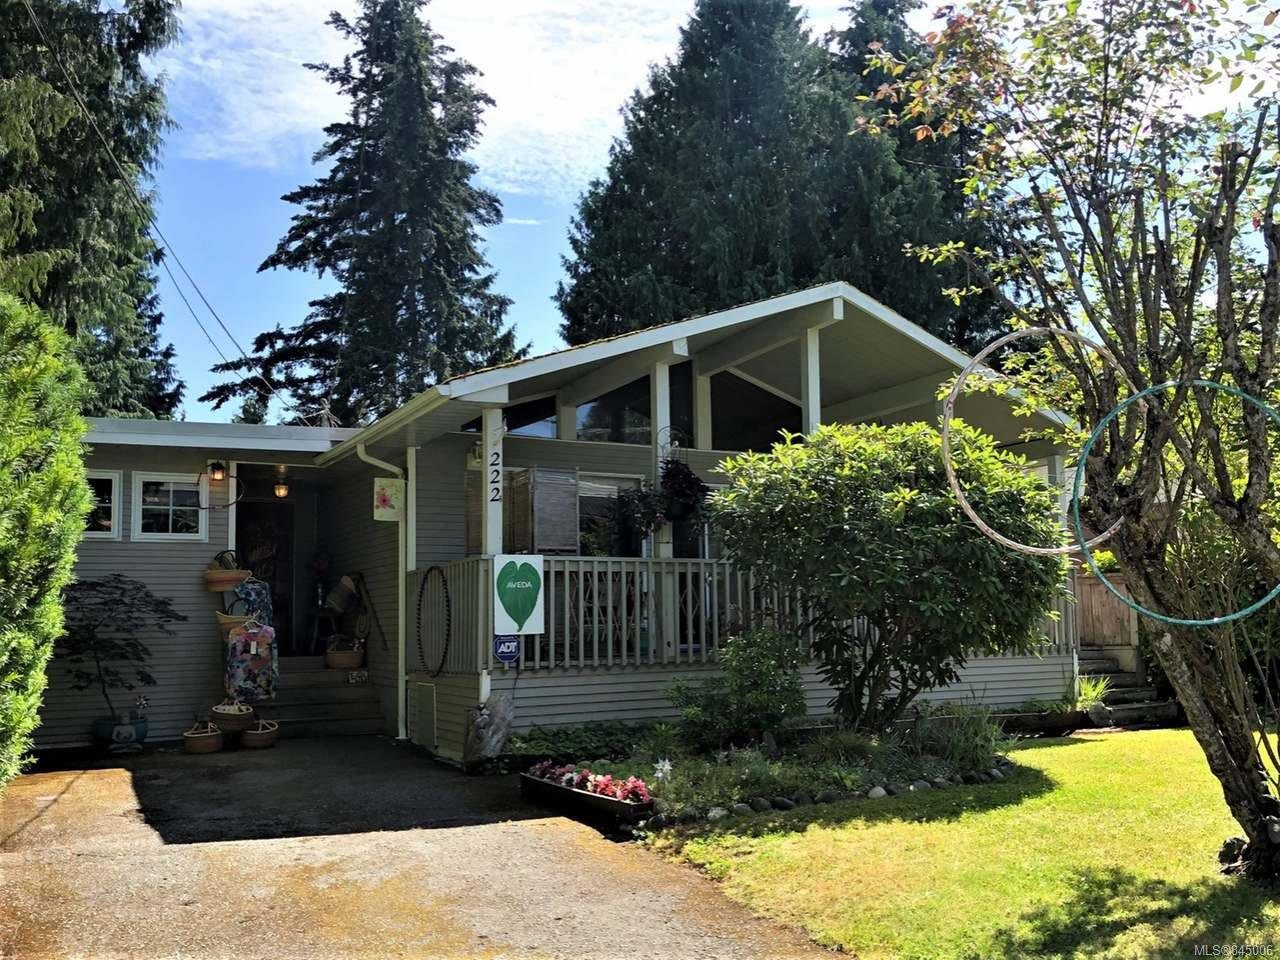 Main Photo: 222 W Fern Rd in QUALICUM BEACH: PQ Qualicum Beach Single Family Detached for sale (Parksville/Qualicum)  : MLS®# 845006